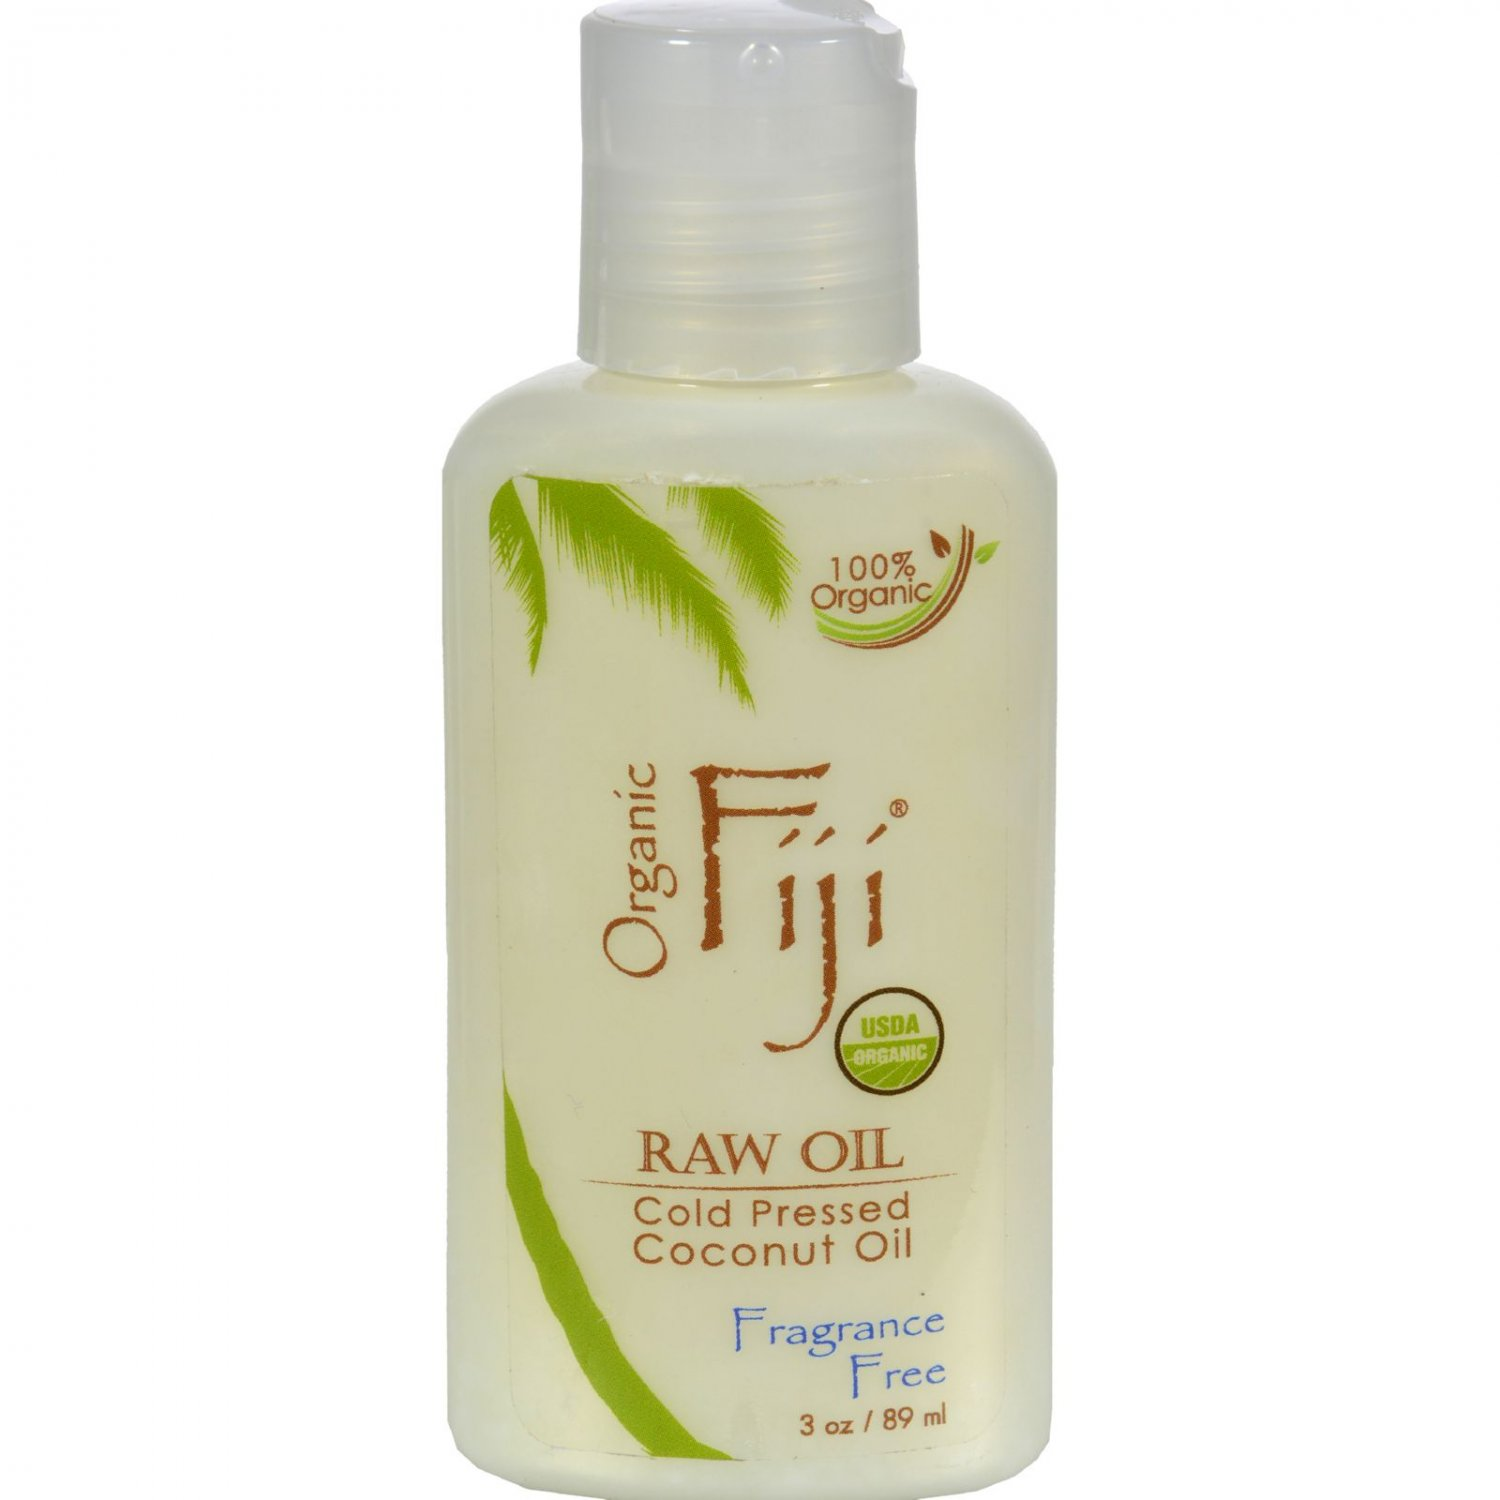 Organic Fiji Virgin Coconut Oil Fragrance Free - 3 oz